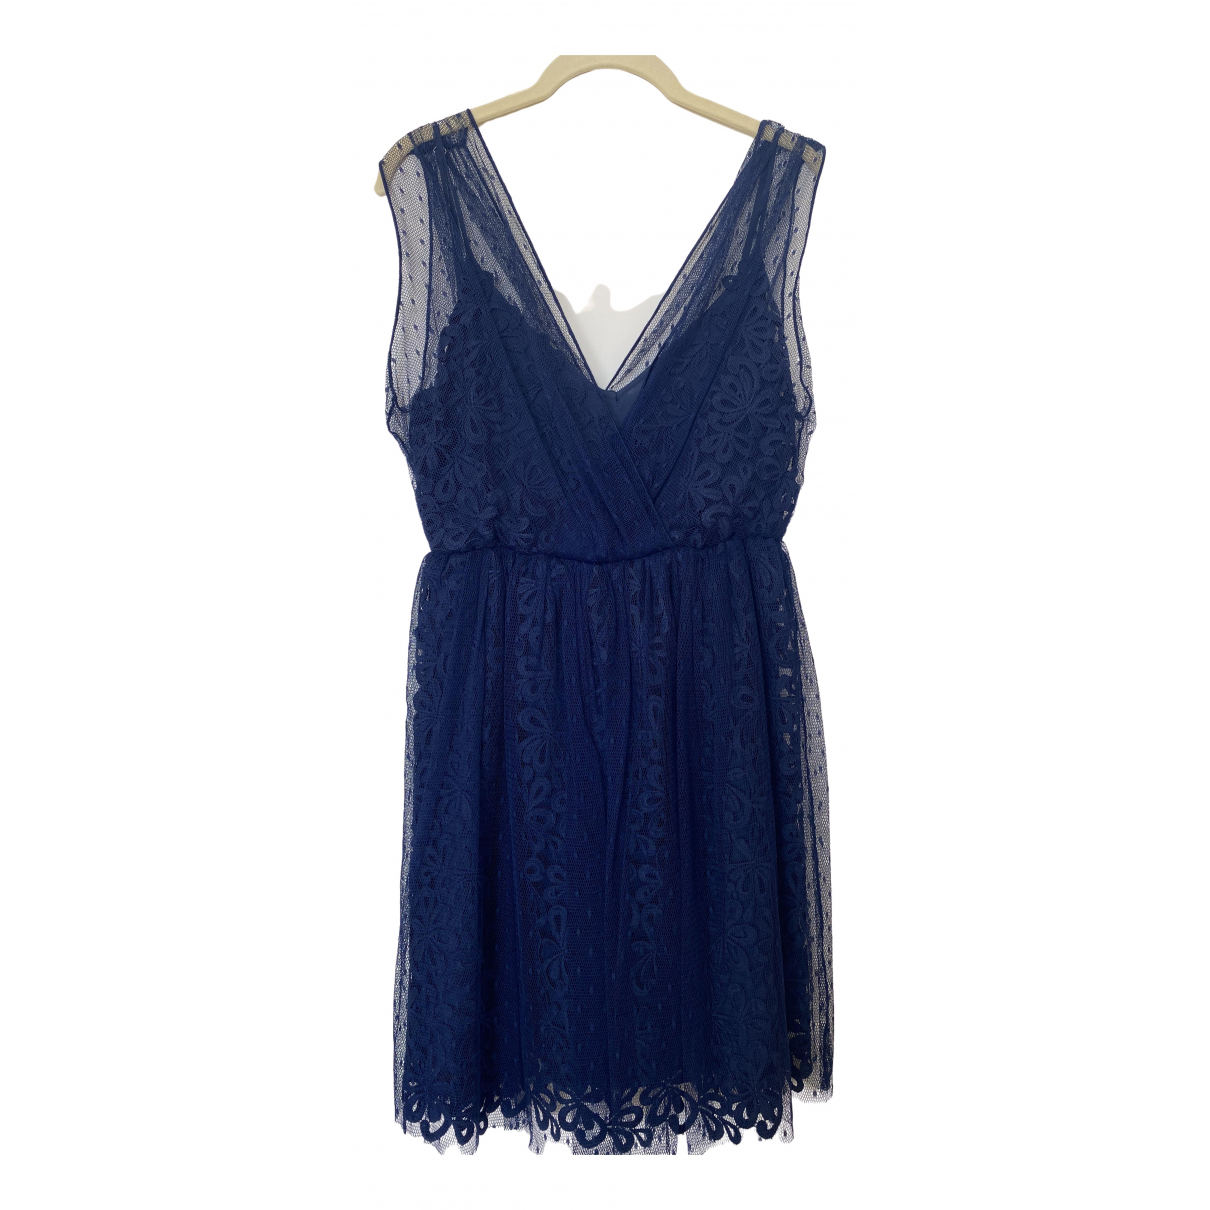 Ermanno Scervino \N Blue dress for Women 38 IT